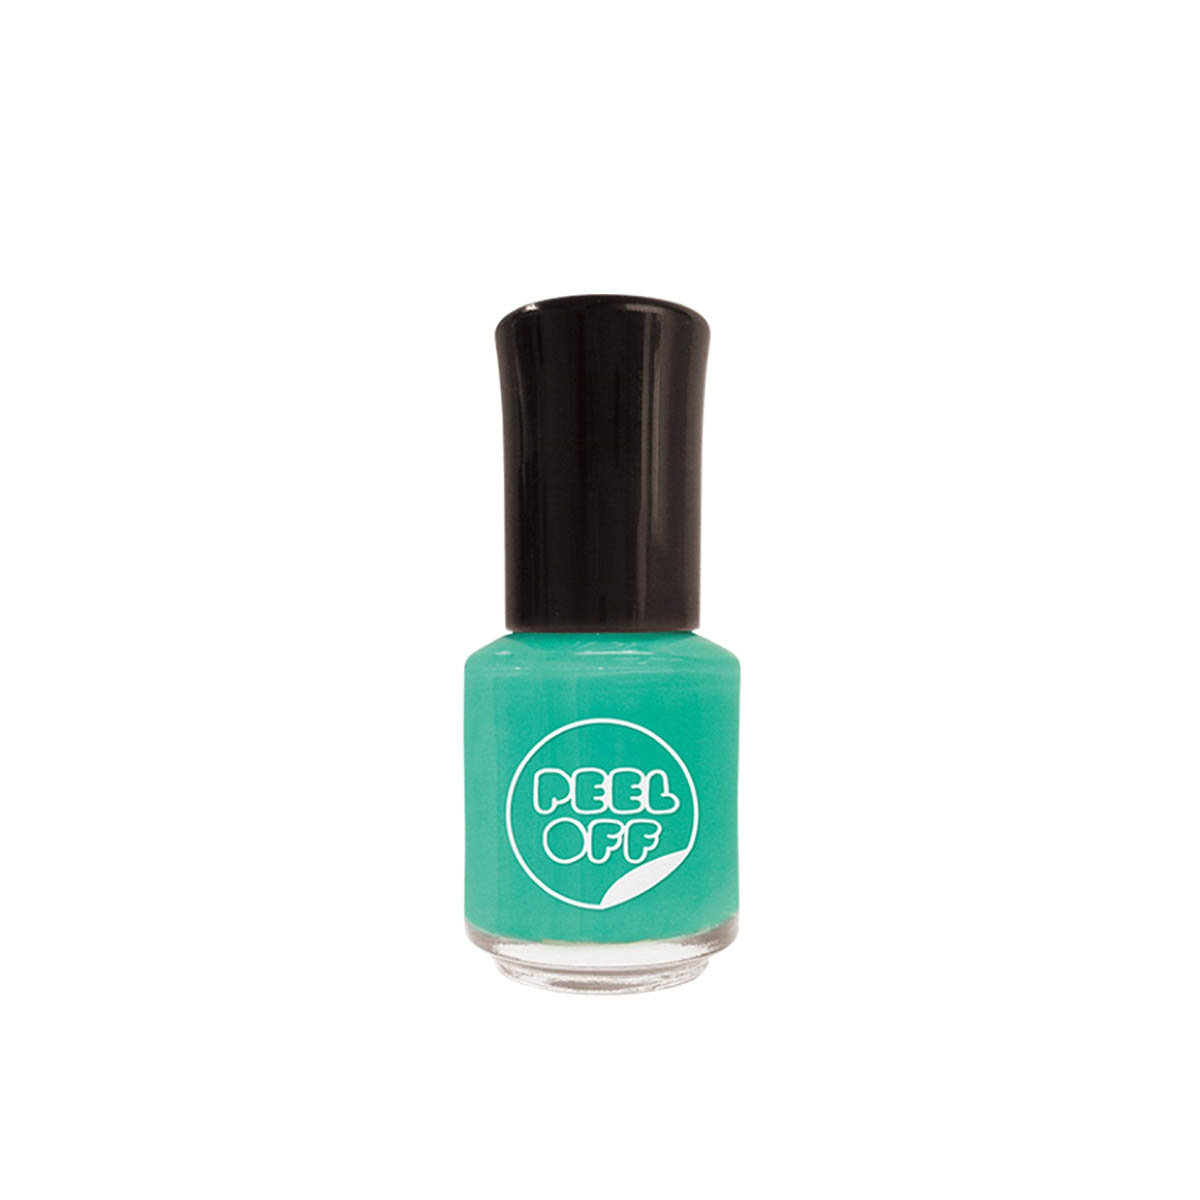 BW Peel Off Manicure (Mint Green)